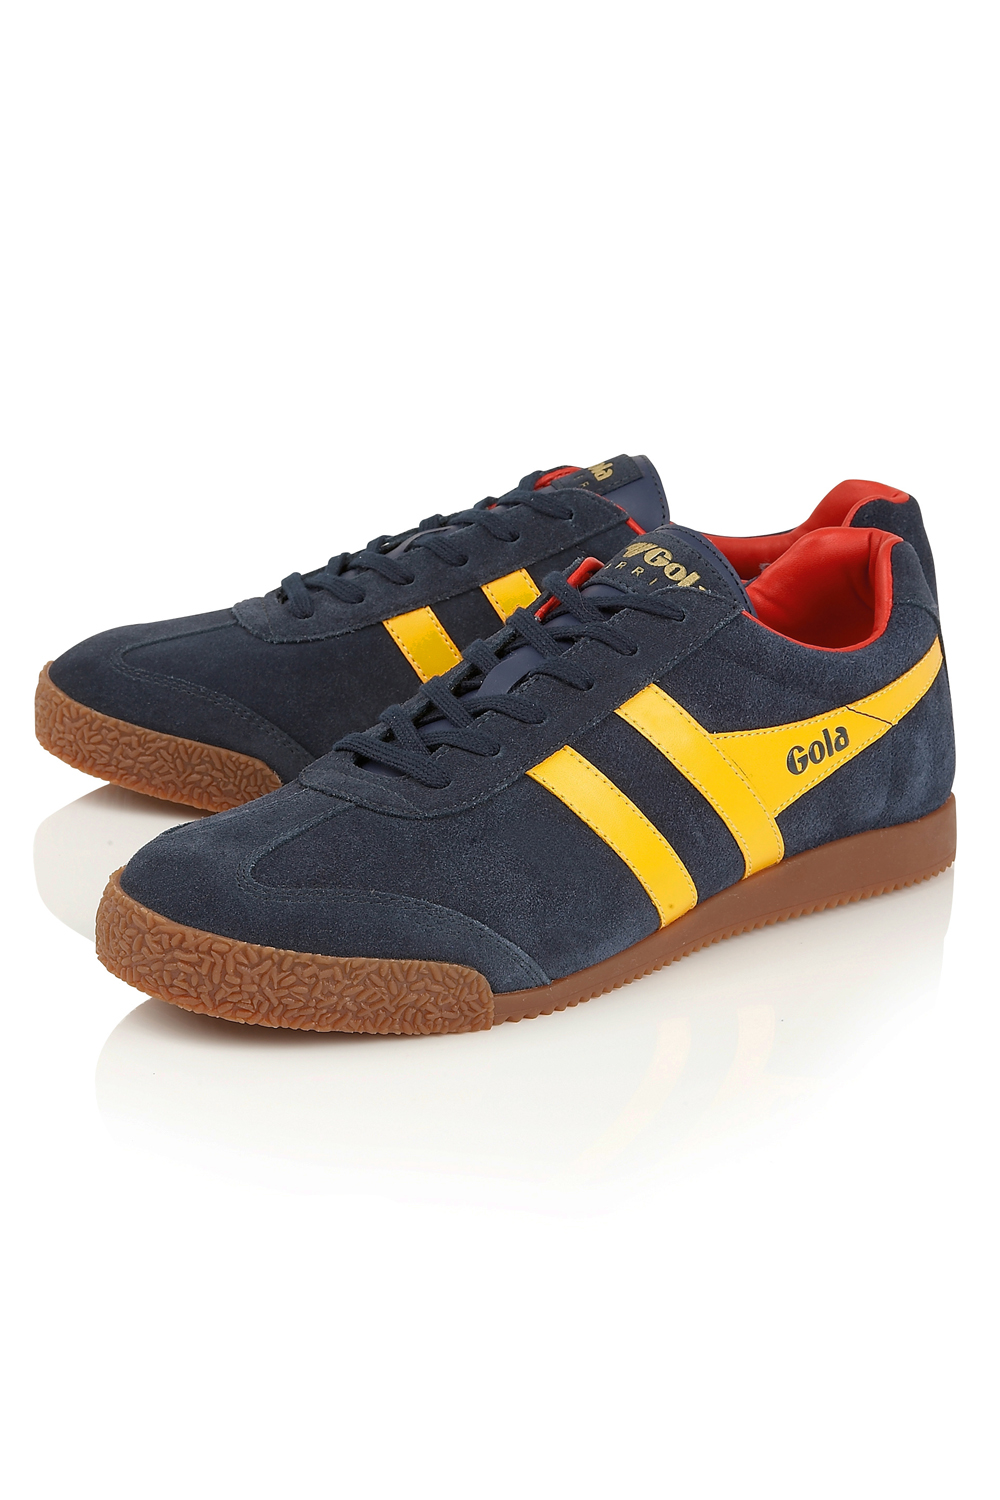 Gola-Harrier-Suede-Classic-Vintage-Lace-Up-Sneakers-Mens-Trainers-Low-Top-Shoes thumbnail 13